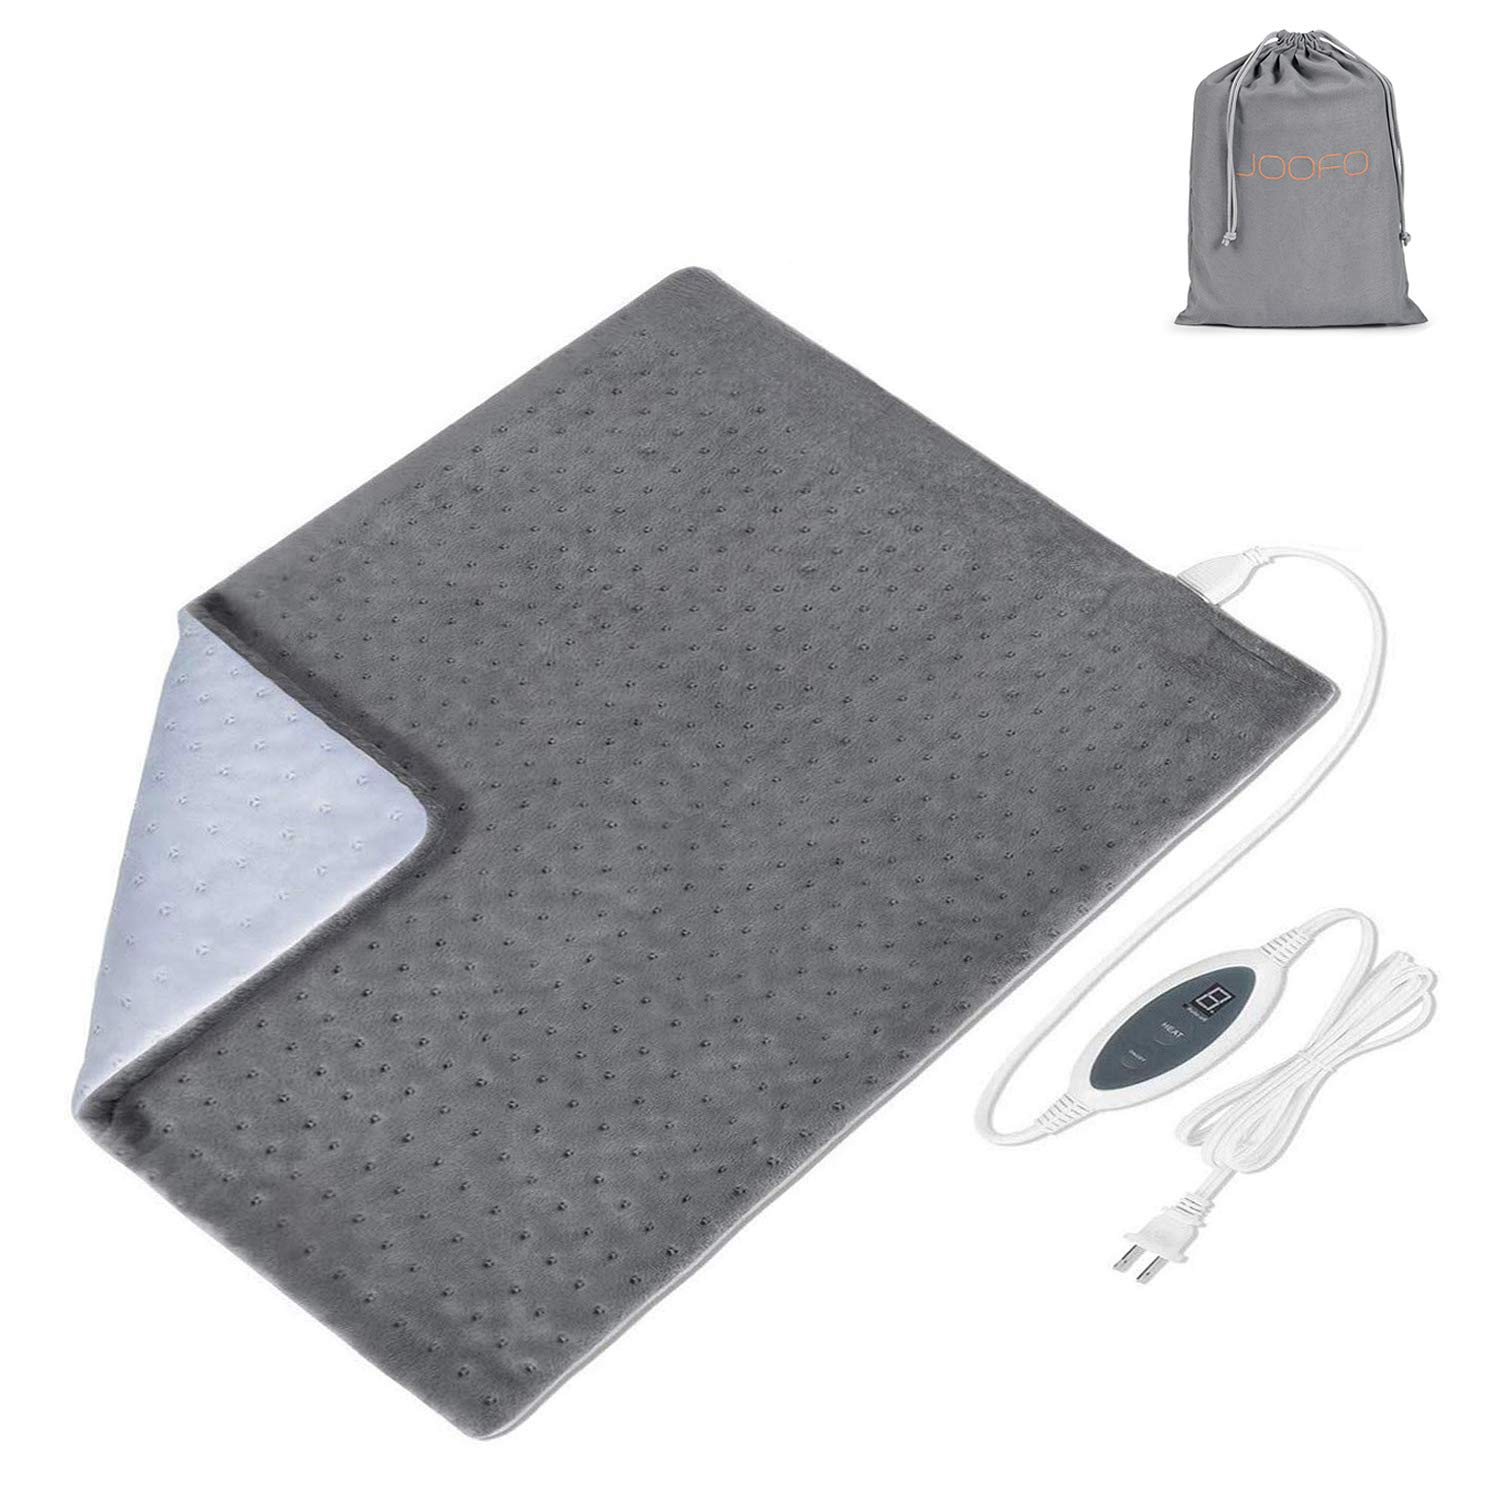 """Joofo Heating Pad for Back Pain and Cramps Relief - [20""""x24""""], Fast-Heating, 4 Temperature Settings, Moist Heat Therapy Option, Auto-Off and Machine Washable, XXL Ultra-Soft Heat Therapy Pad"""